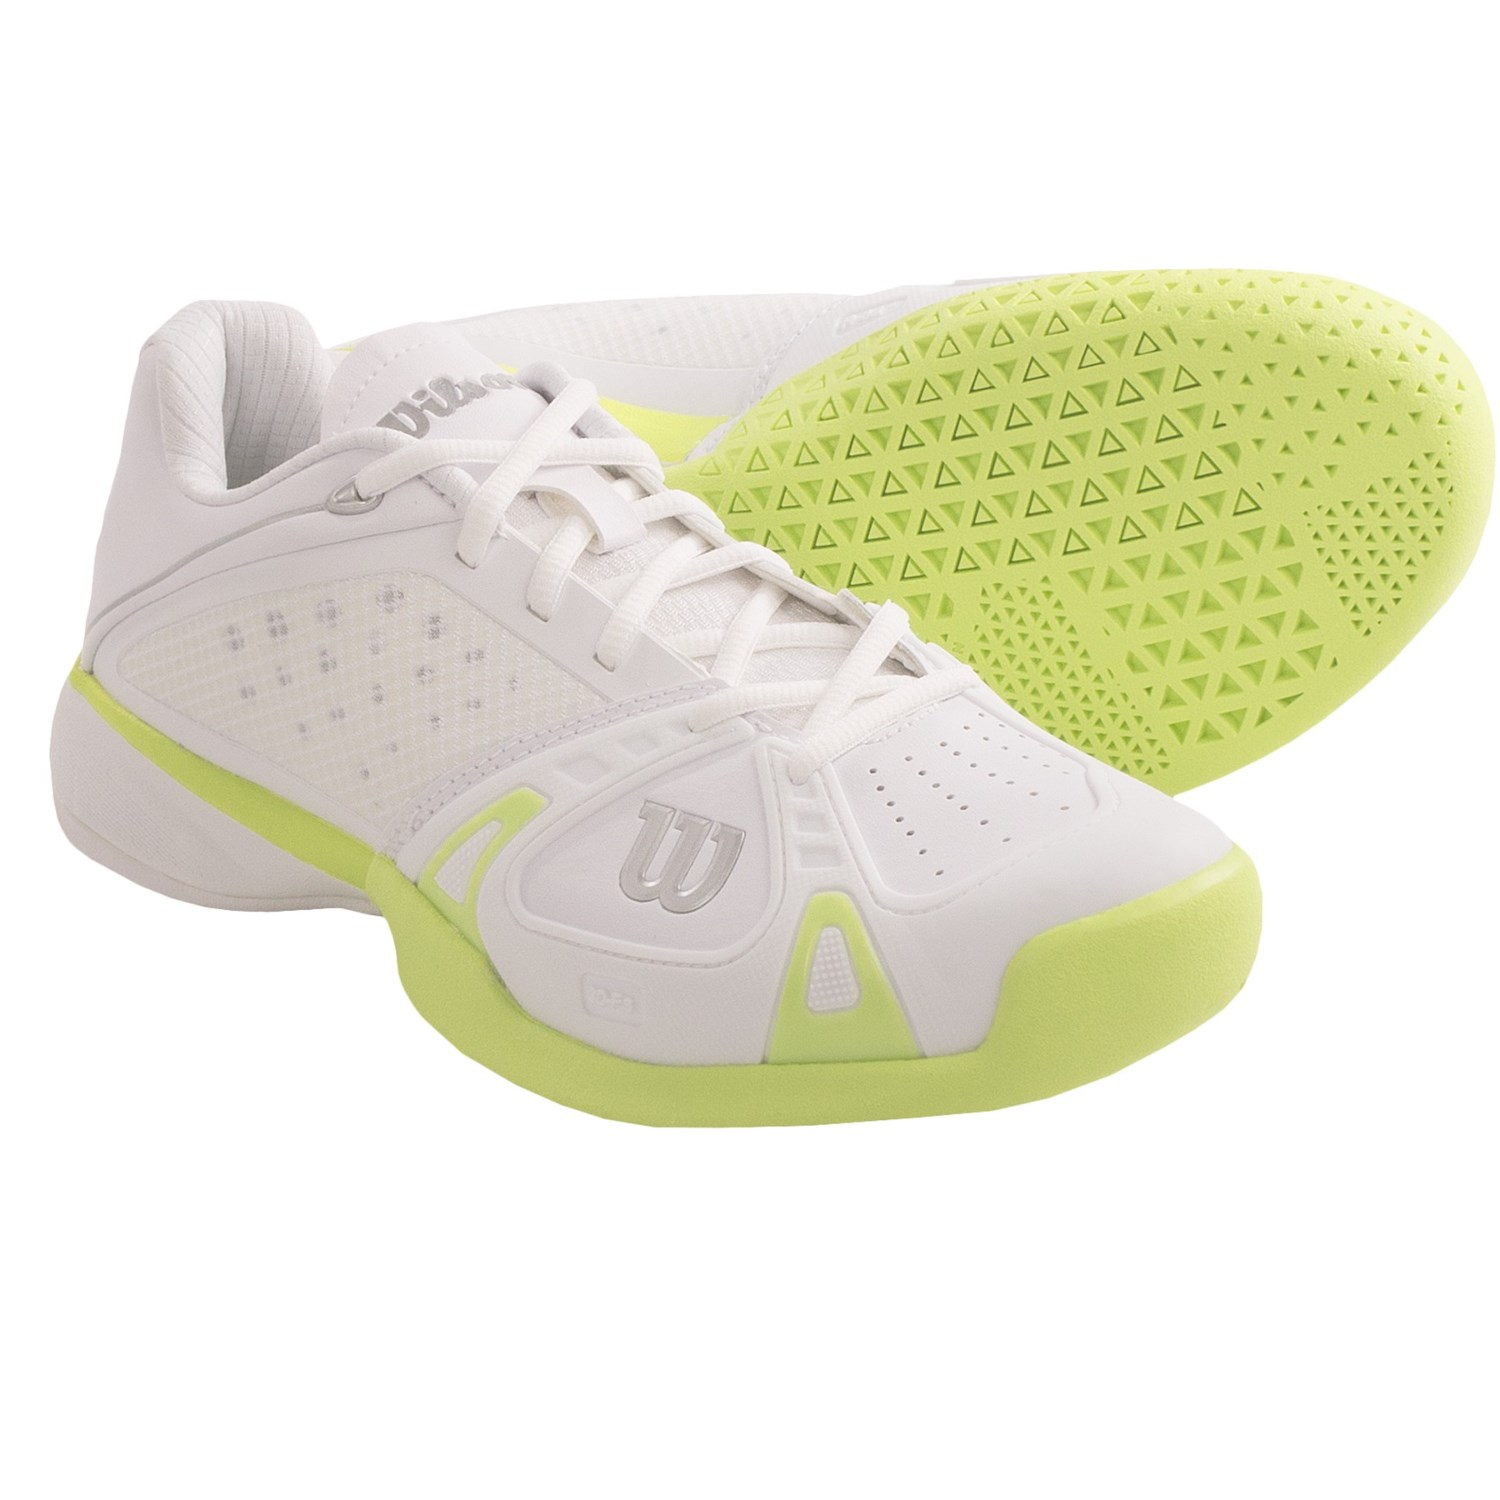 wilson pro staff classic supreme tennis shoes for women in white cyan